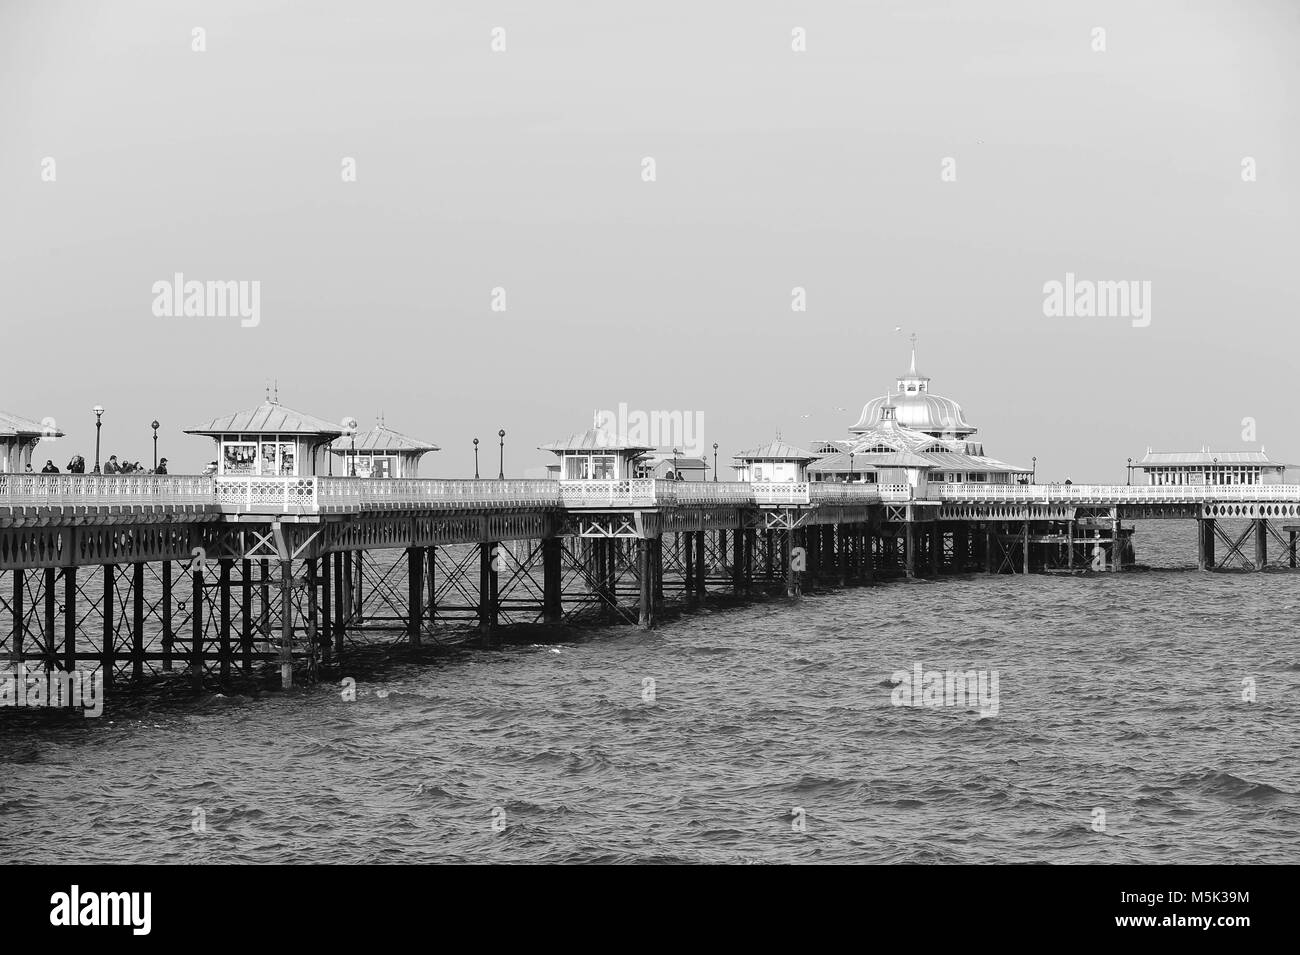 Llandudno town and seaside resort - Stock Image